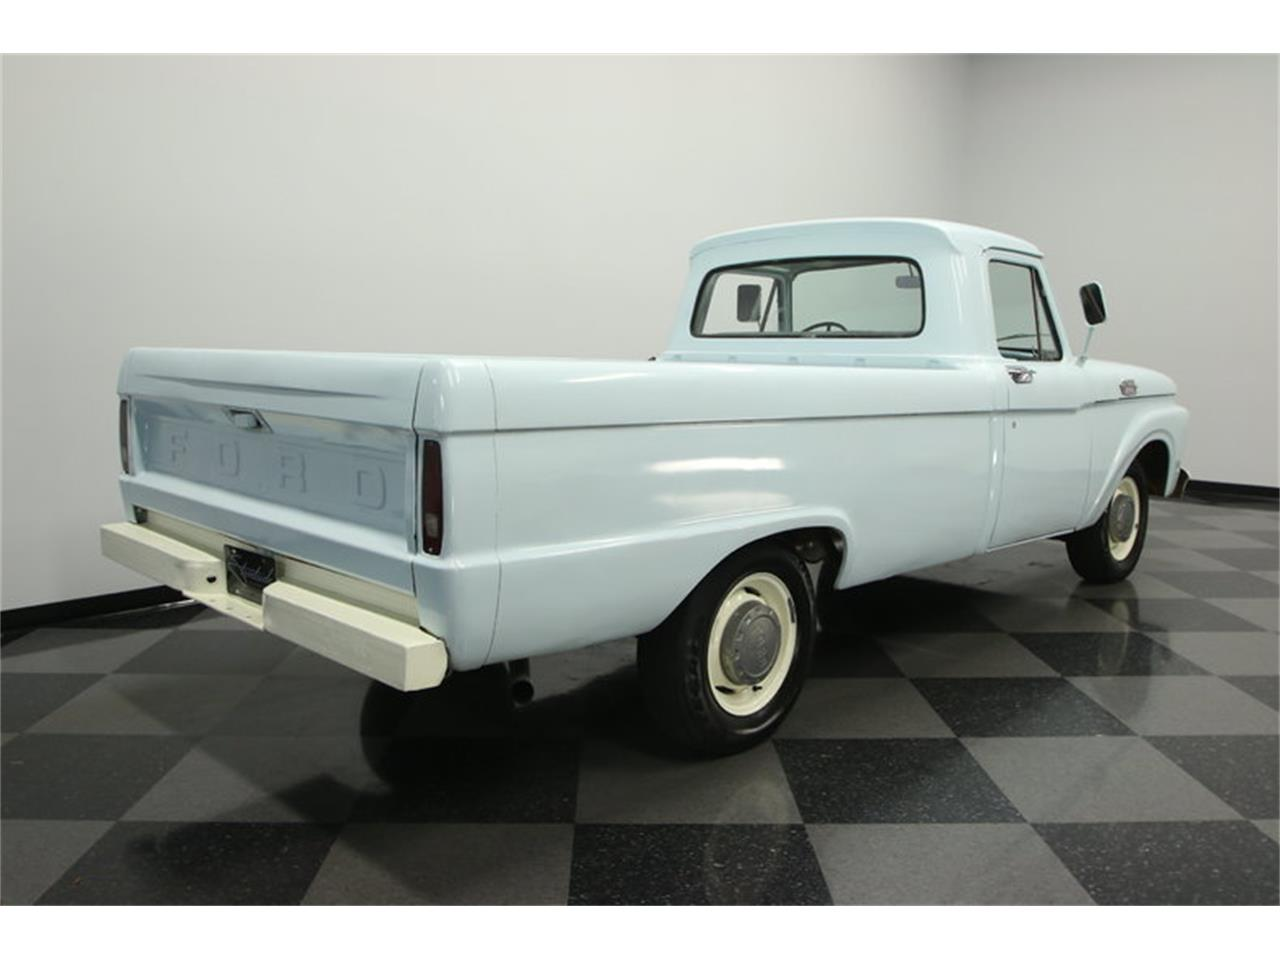 1964 Ford F250 For Sale Cc 856232 F 250 Truck Large Picture Of Classic Located In Florida Offered By Streetside Classics Tampa